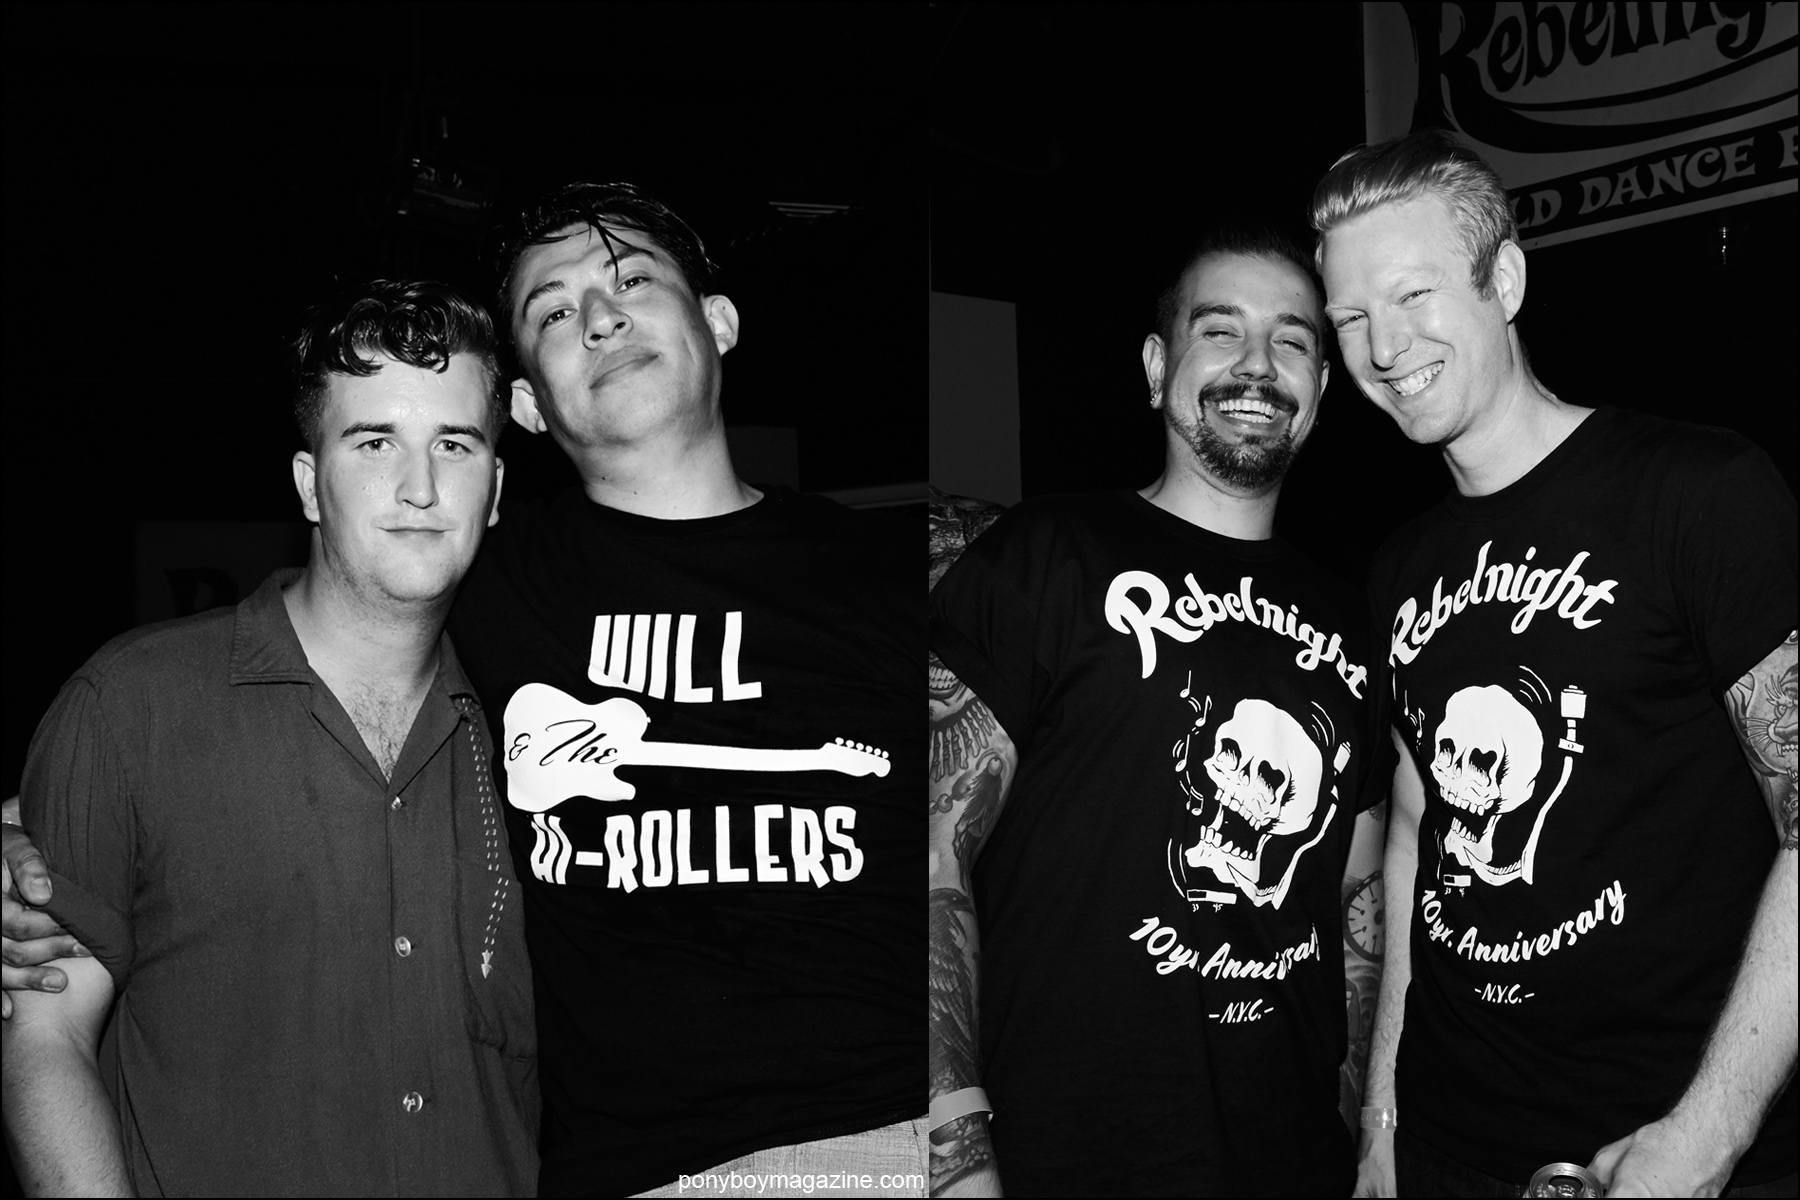 Rockabilly men photographed at Rebel Night NYC Hula Rock Vol 2 weekender. Photographs by Alexander Thompson for Ponyboy magazine NY.